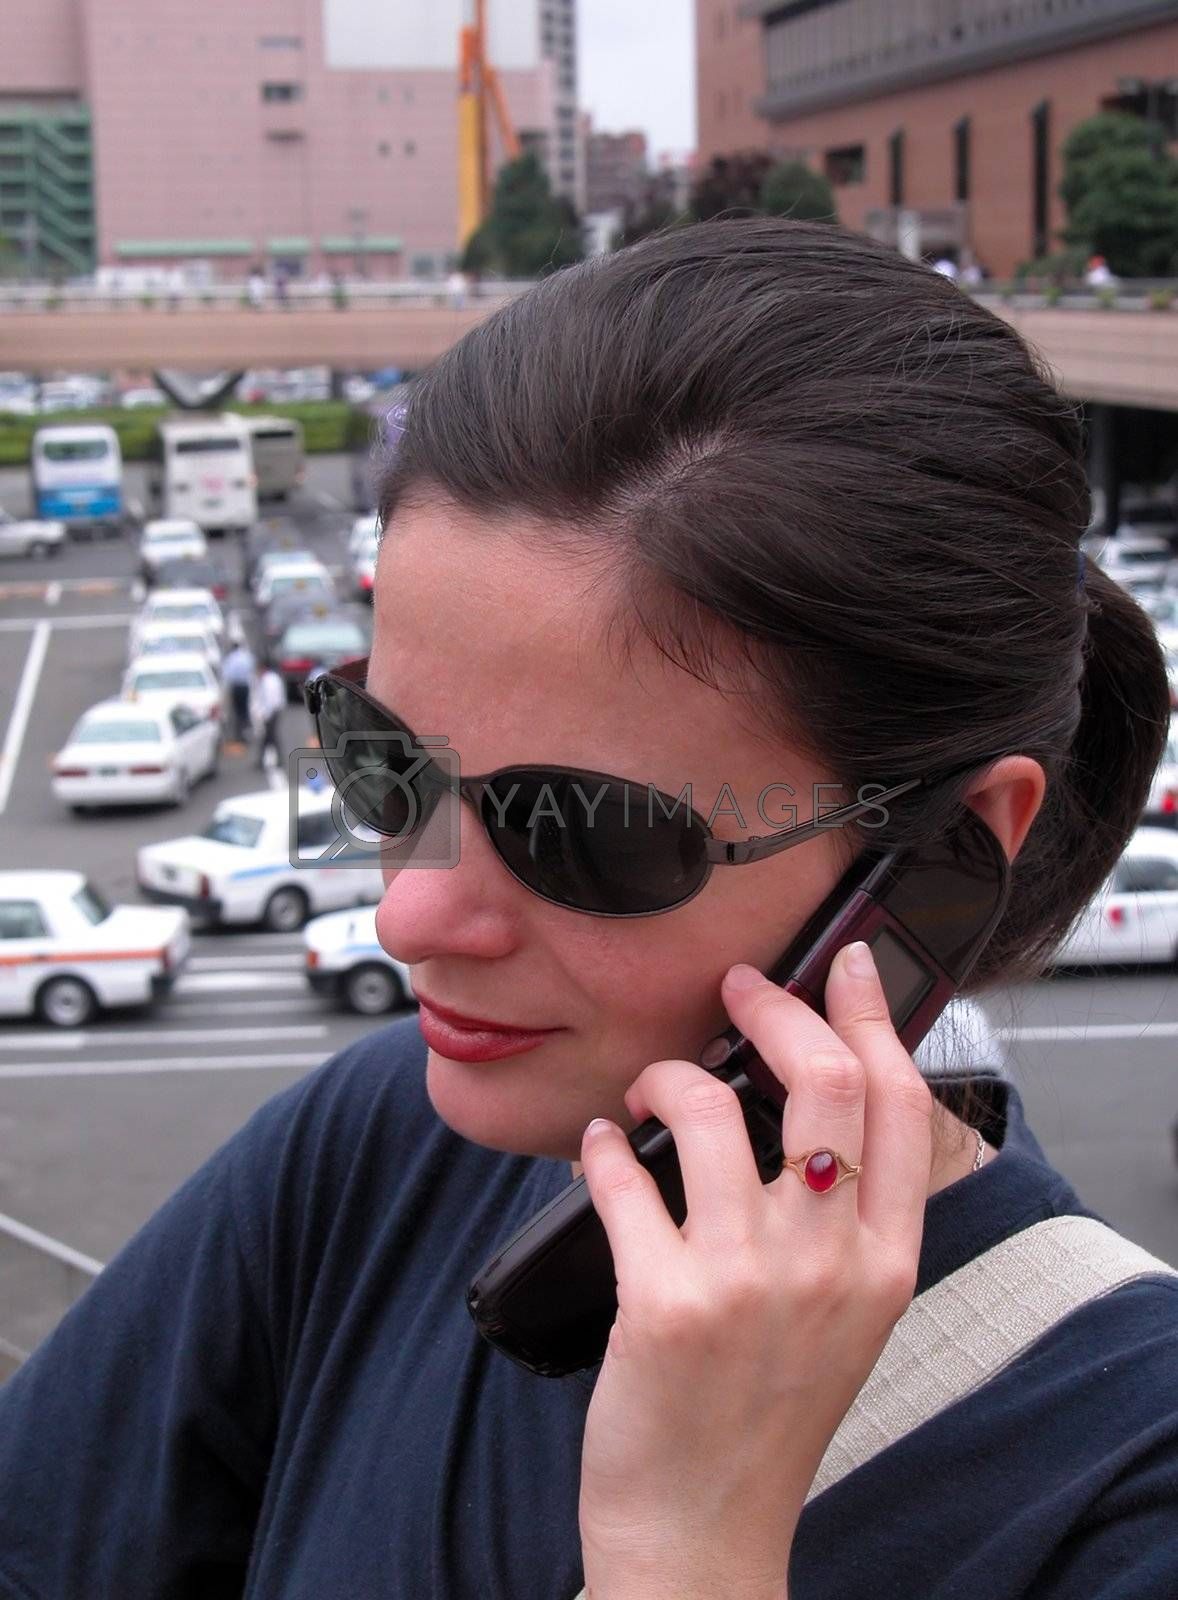 Woman with sunglasses using mobile phone in a big city.